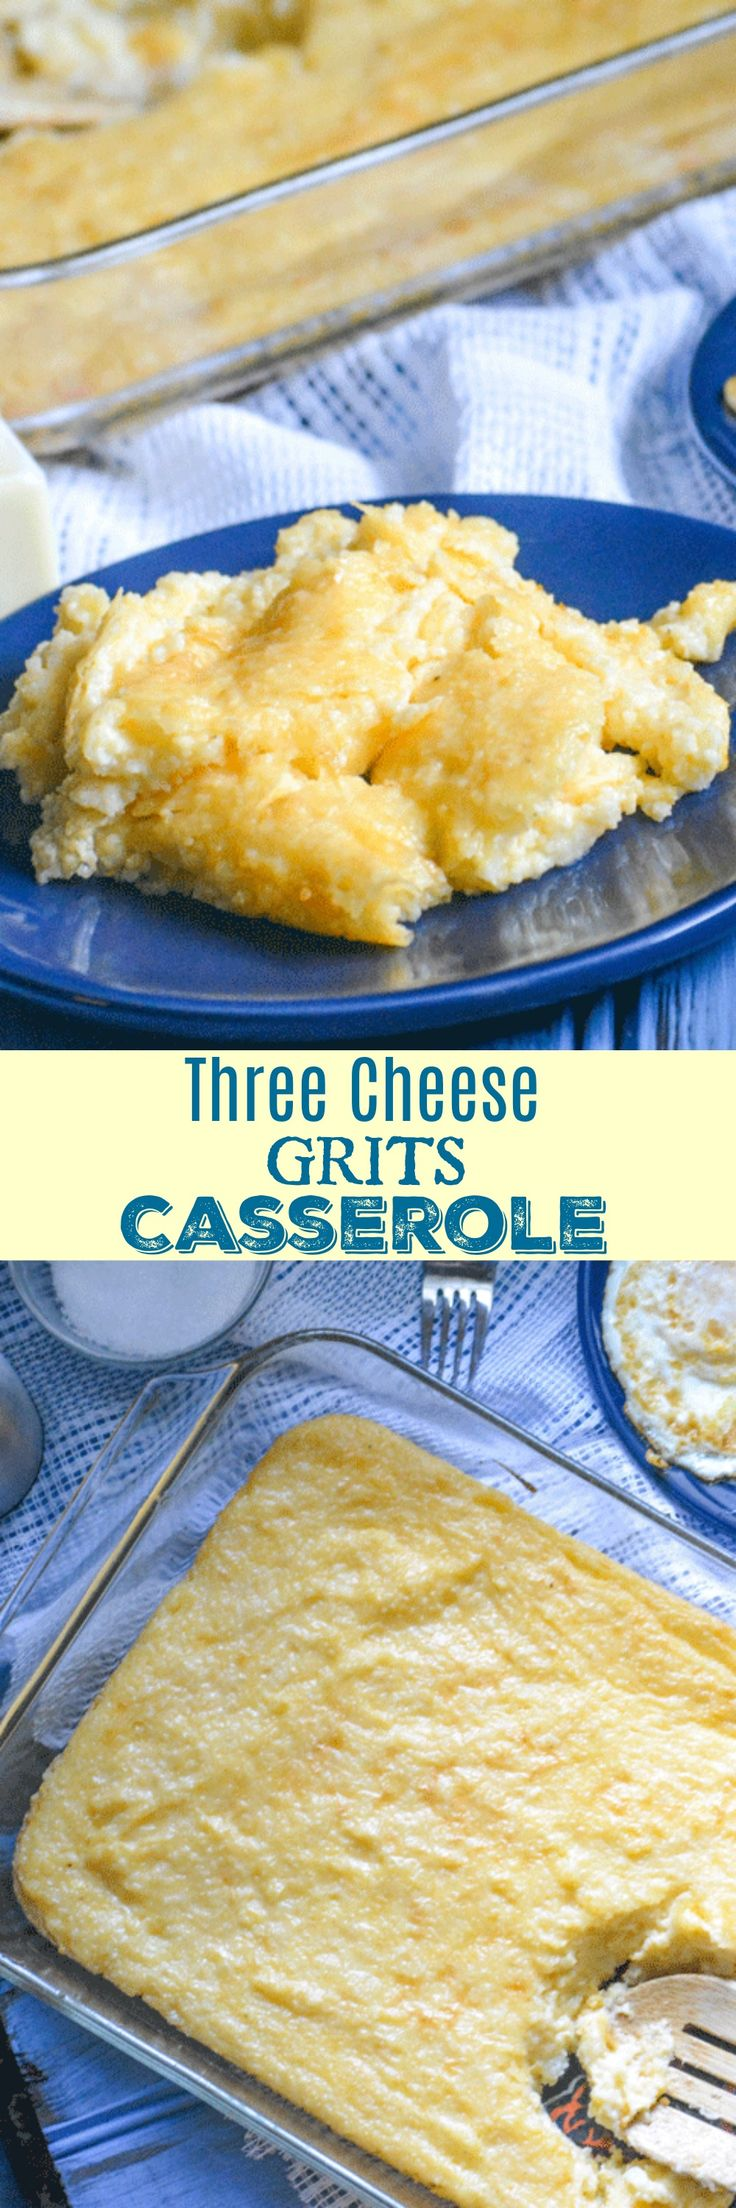 Breakfast or brunch is always a meal to look forward to. Get your fix in this creamy Three Cheese Grits Breakfast Casserole. Served with your favorite meat, and eggs, it's a delicious breakfast dish made to serve a crowd.